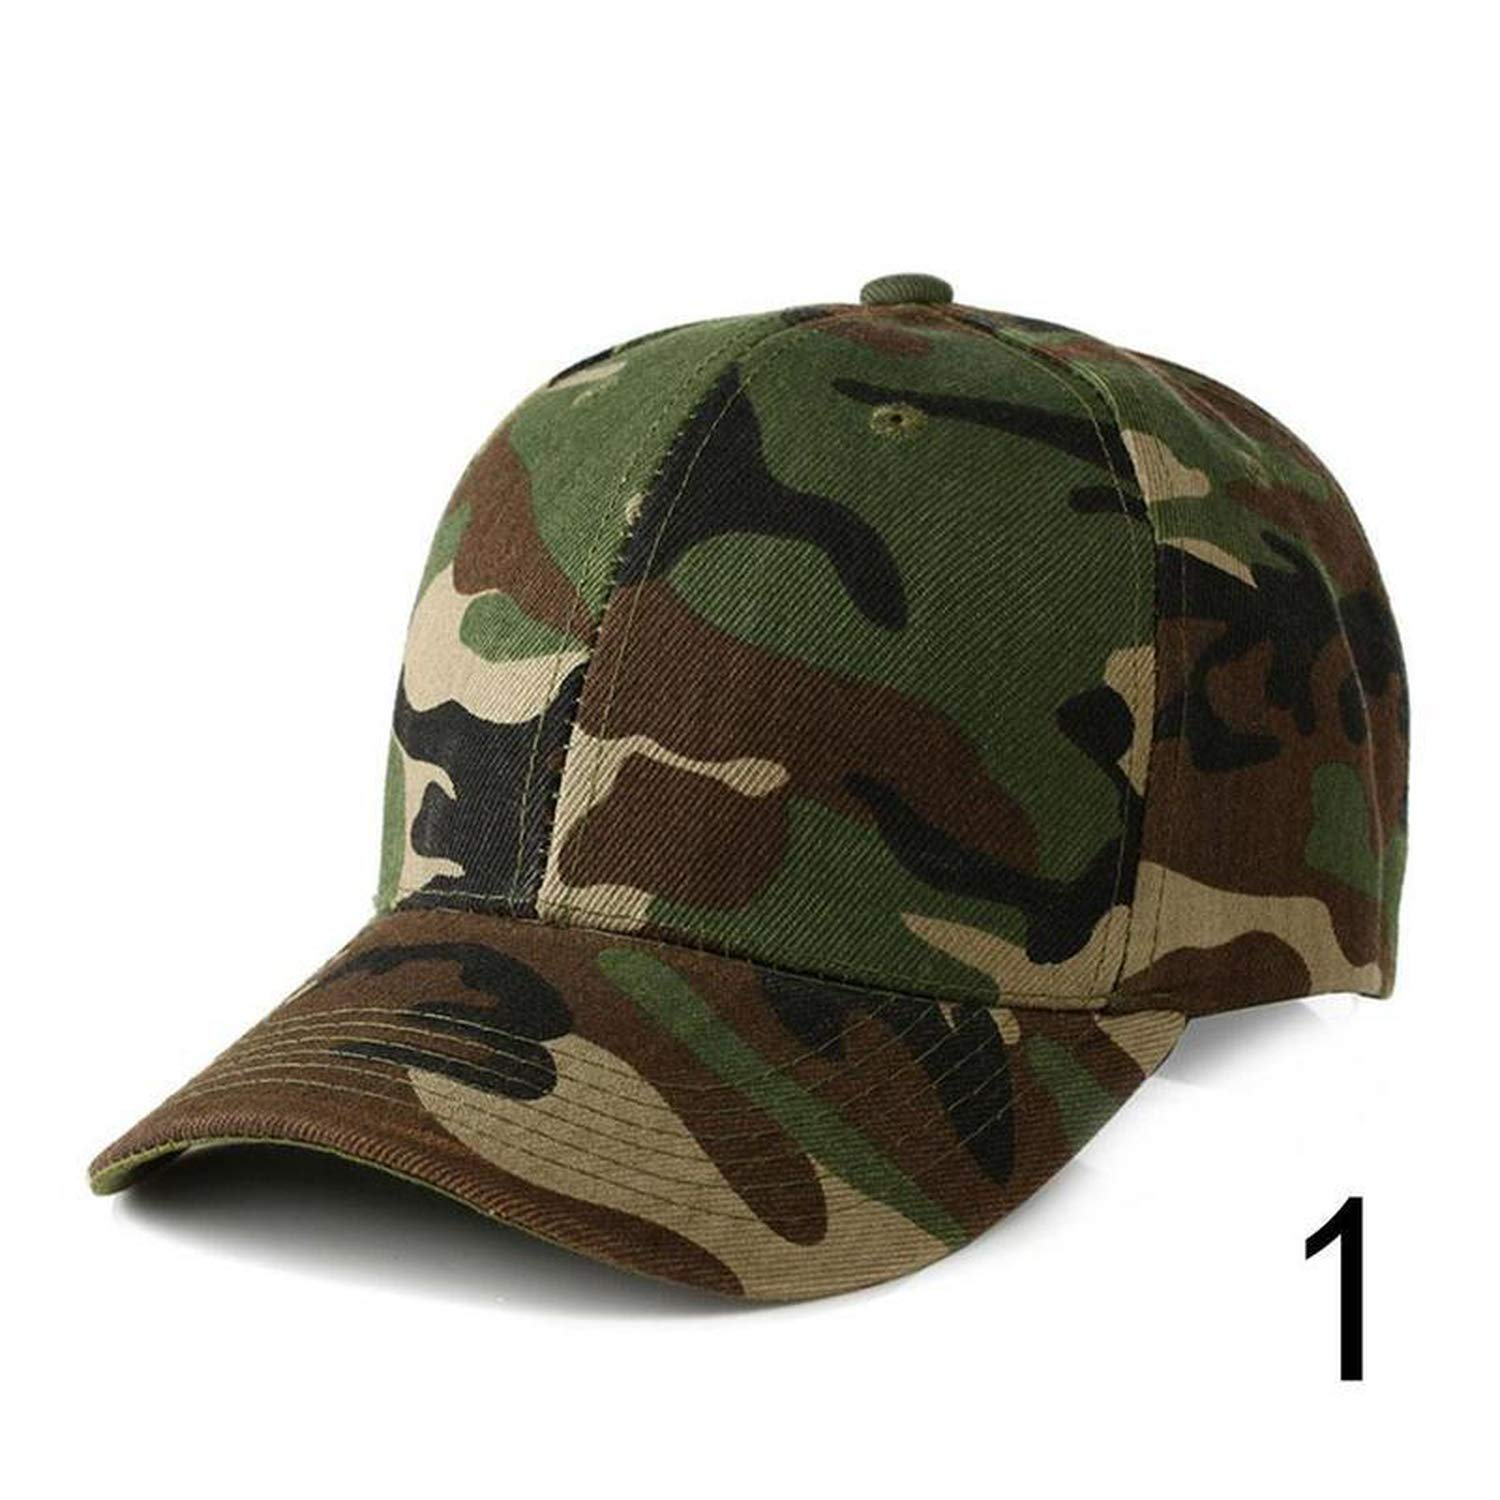 Amazon.com: Camouflage Baseball Cap Men Tactical Cap Camouflage Hippop Snapback Hat Masculino Dad Hat: Clothing